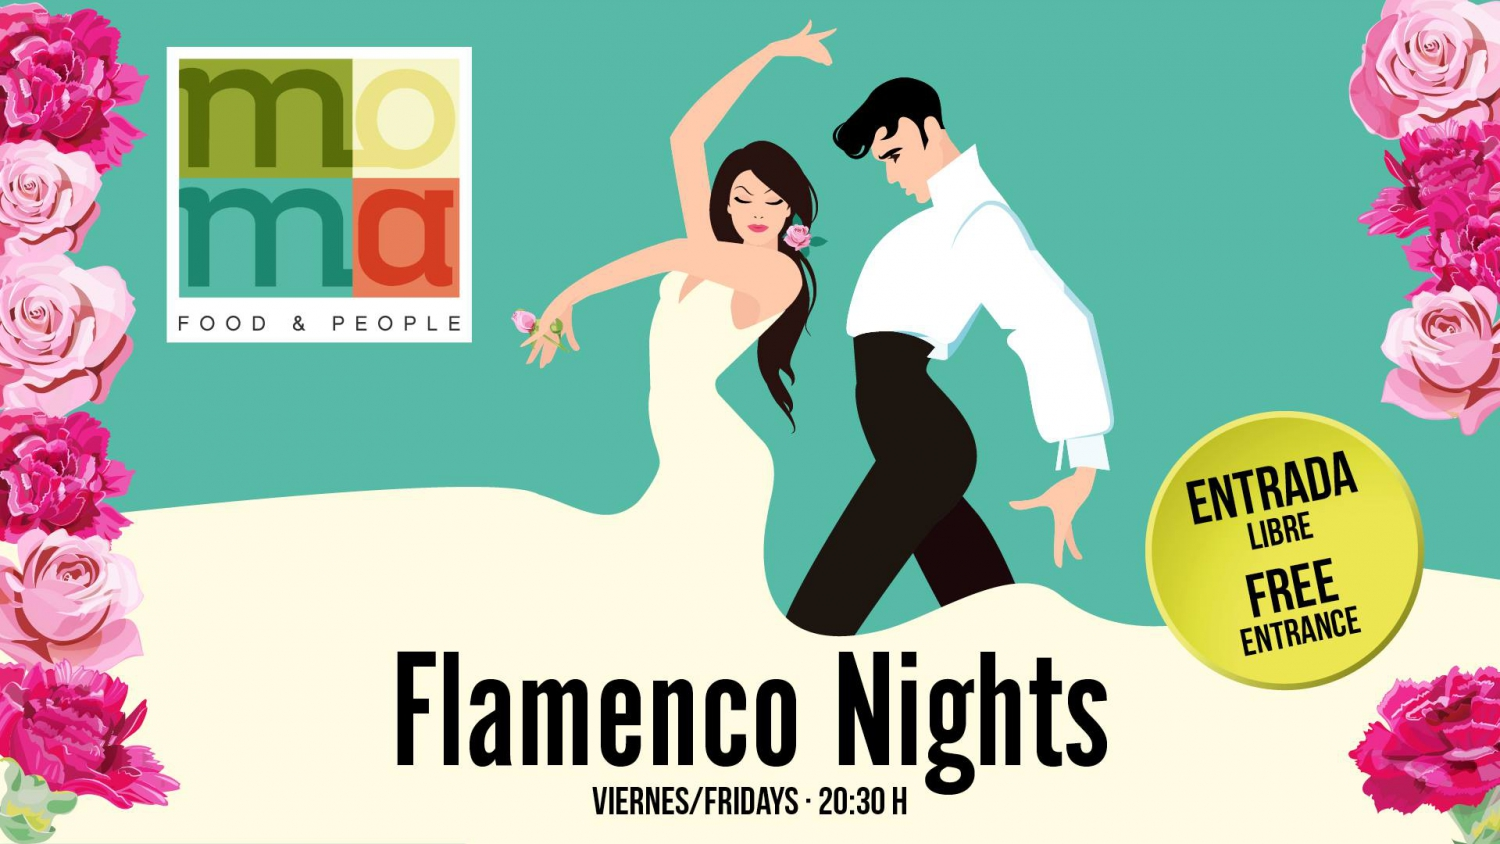 Flamenco Nights